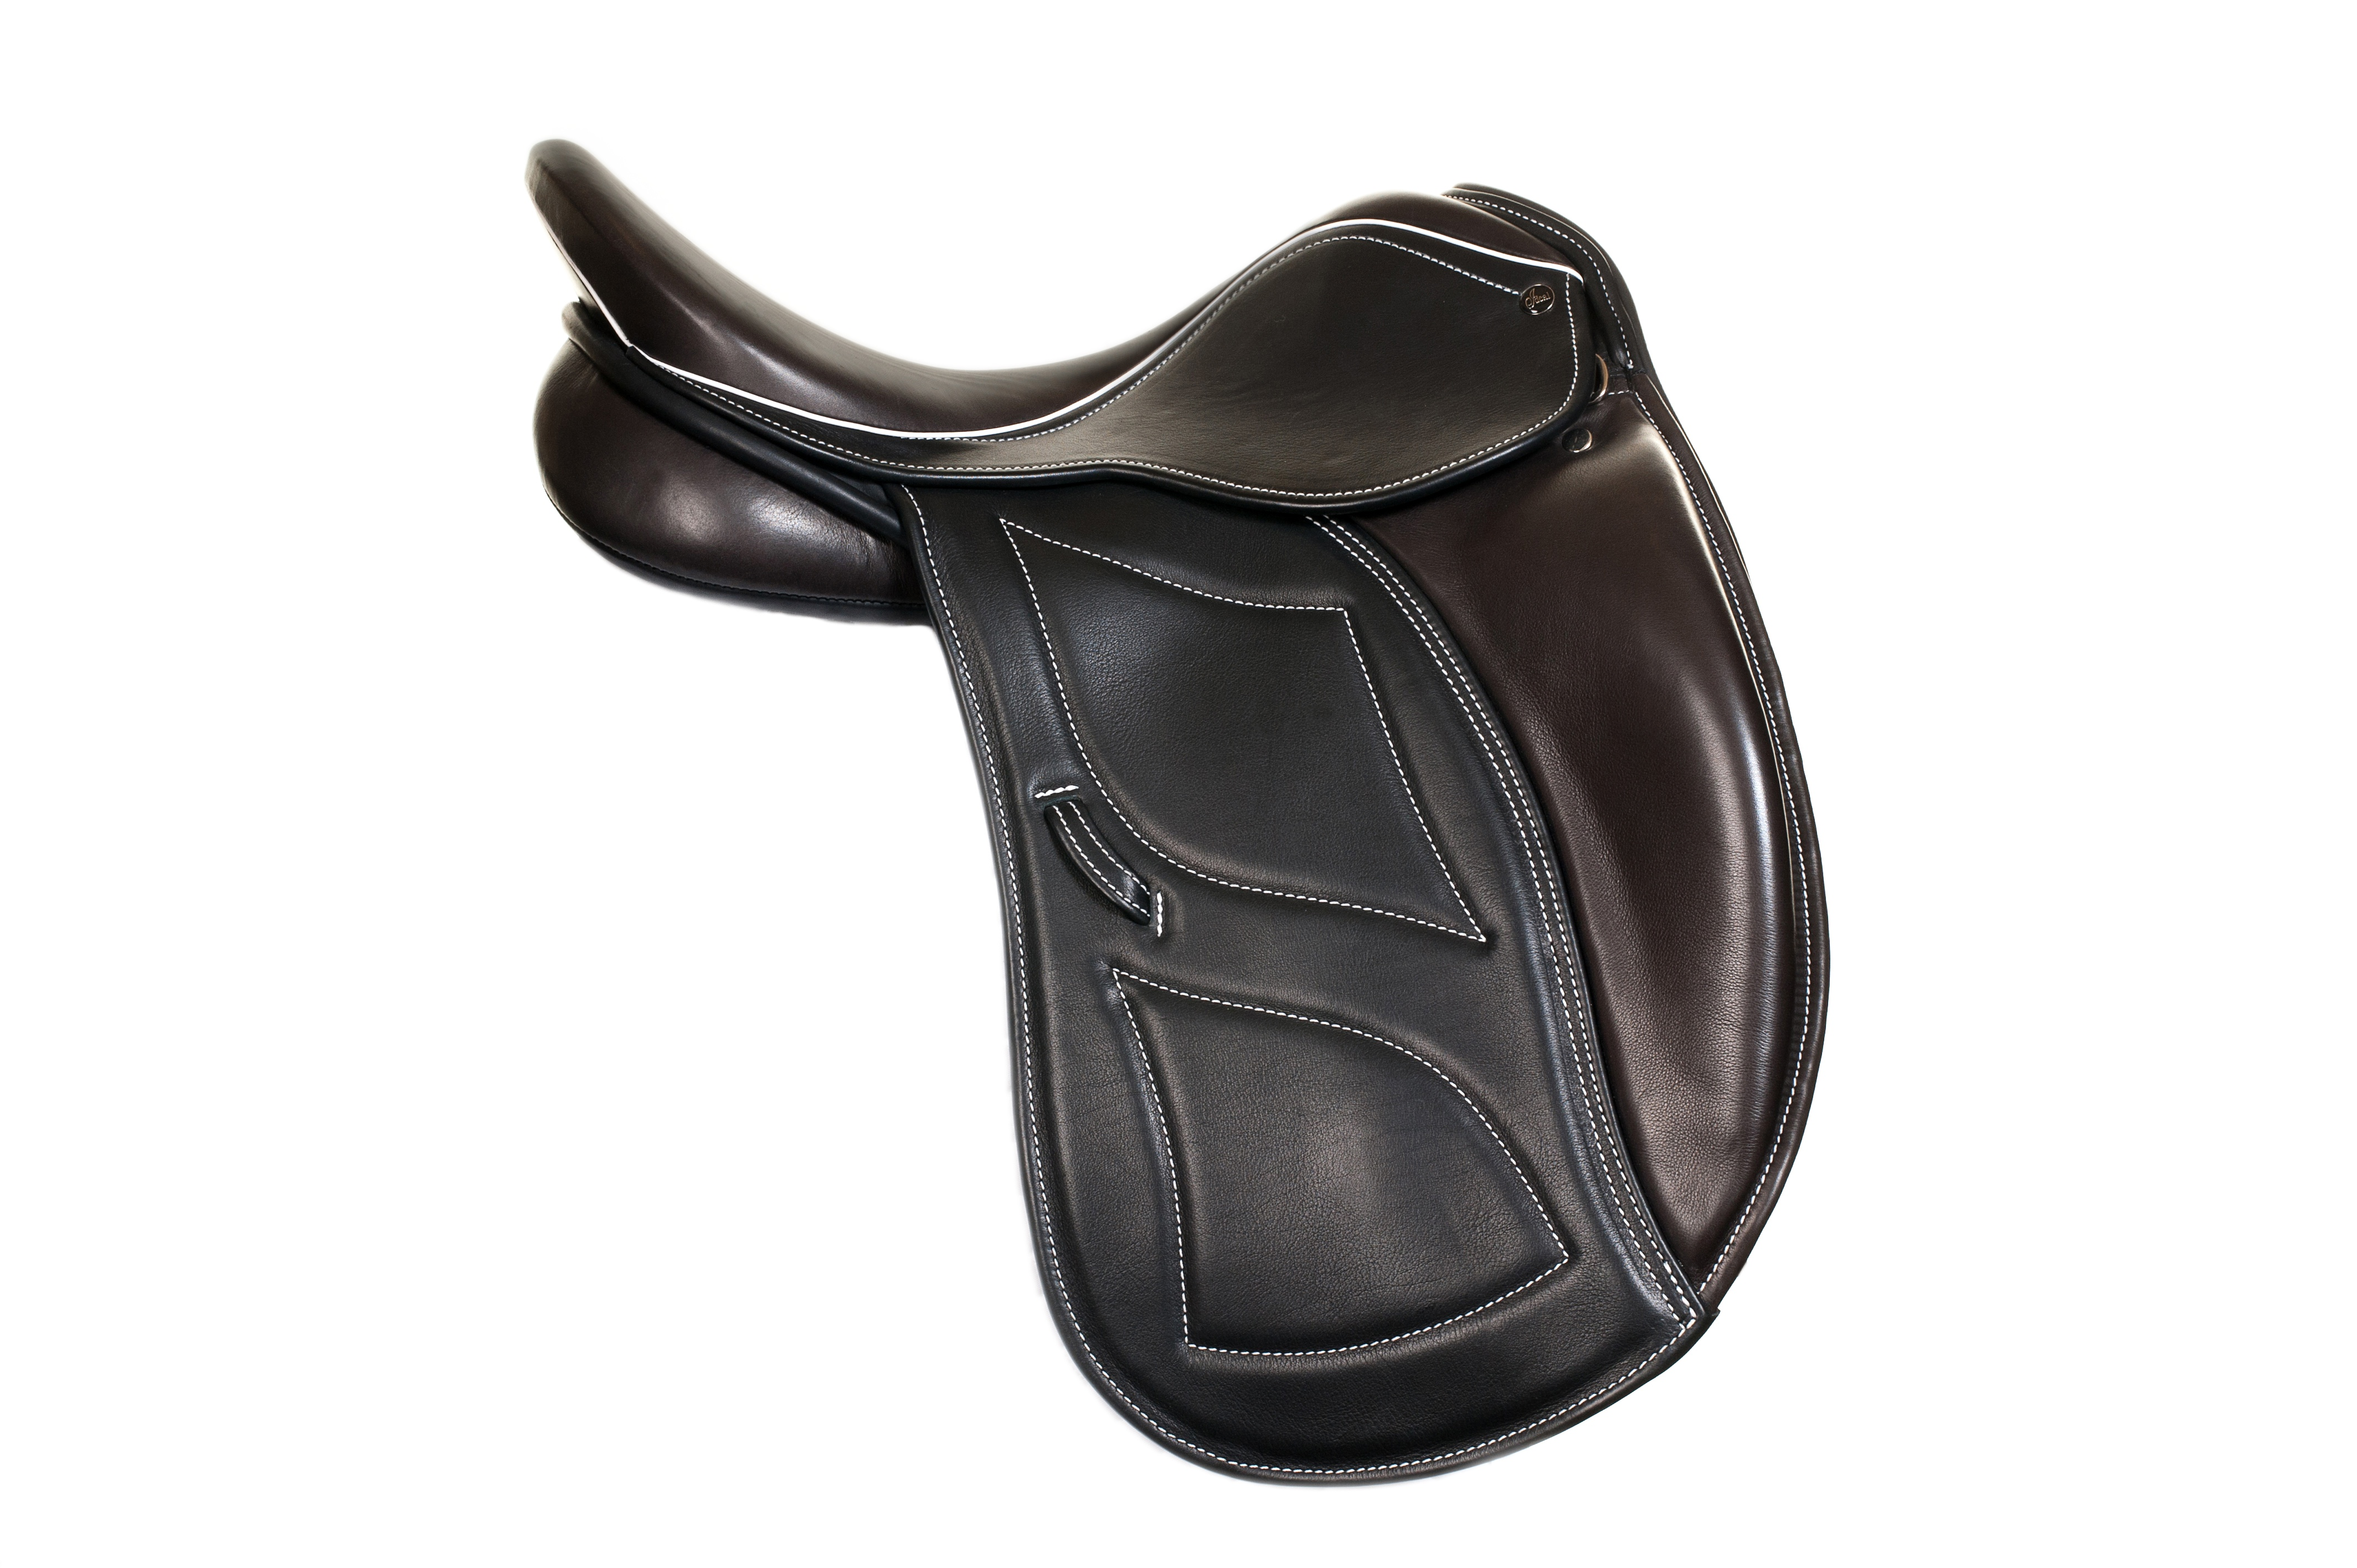 Saddle Impala Pro D2 - Win a saddle with Petplan Equine's 25th Anniversary Competition